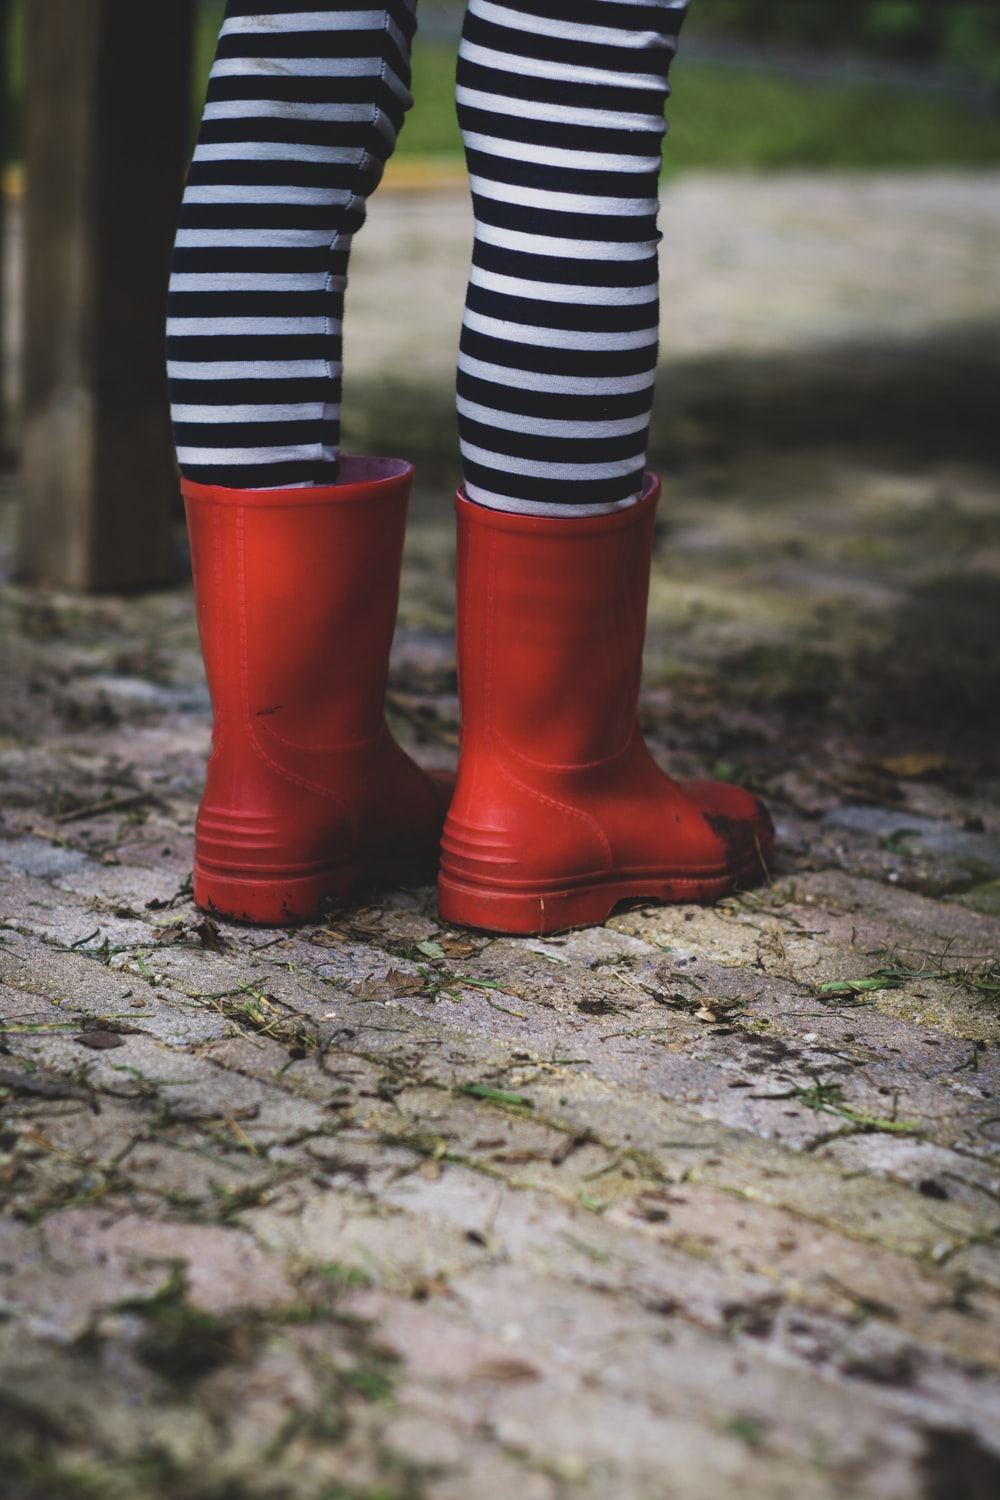 person wearing black and white striped socks and red rain boots standing on concrete pavement